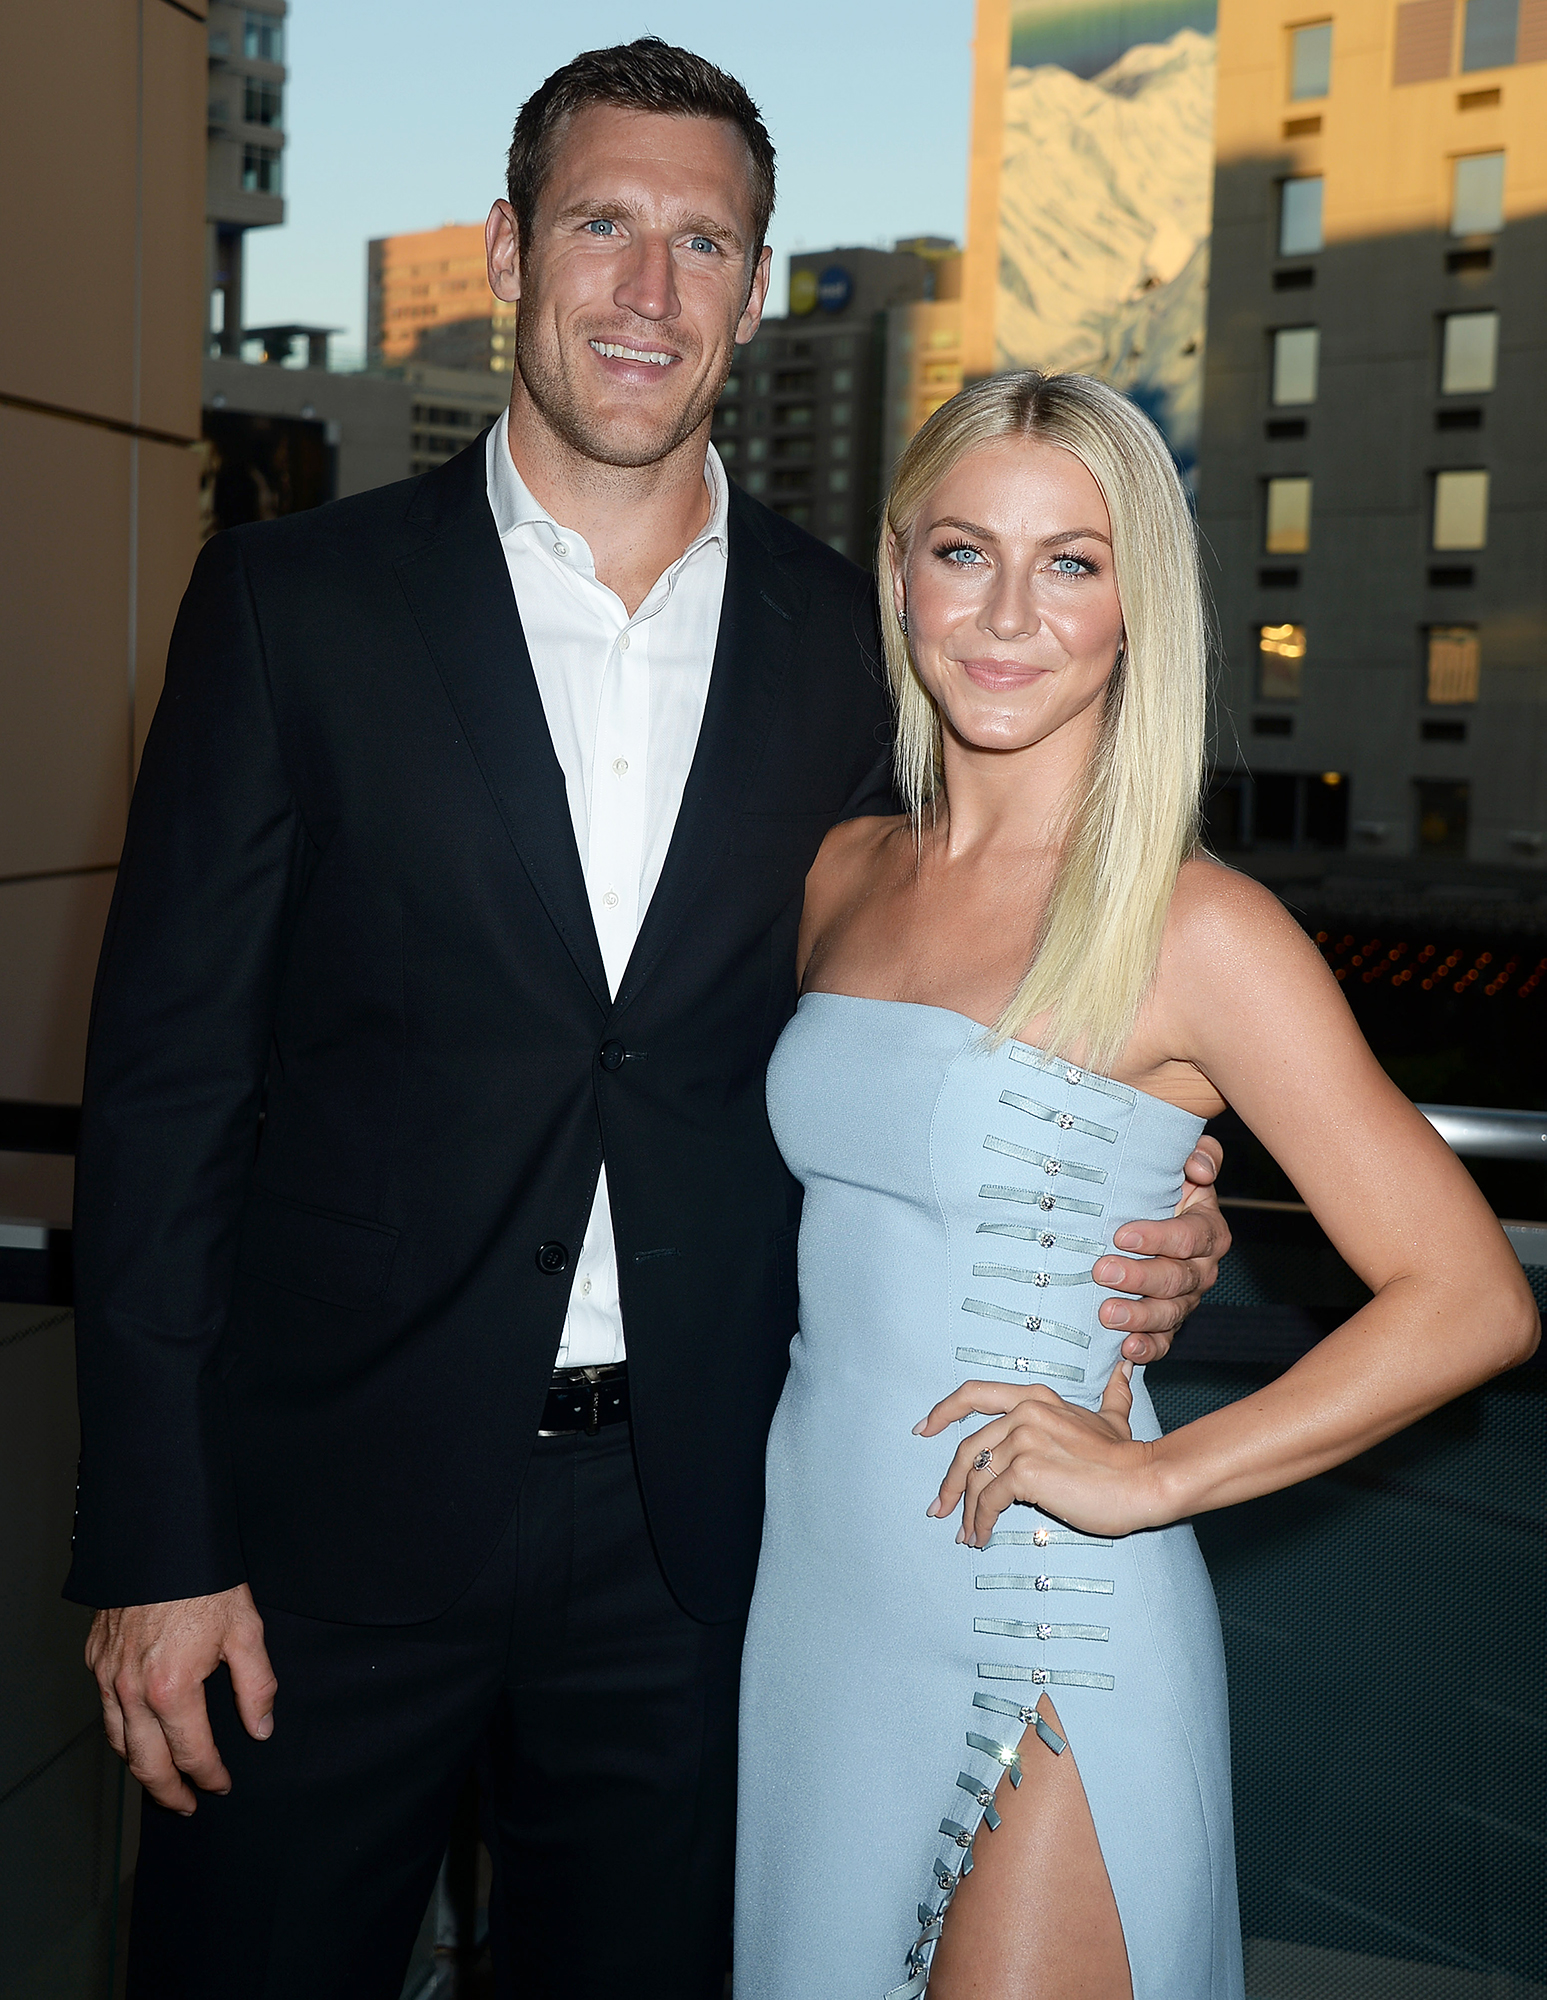 Brooks Laich Is 'Re-Assessing Many Things' in Life, 'Putting Happiness' First Amid Julianne Hough Issues